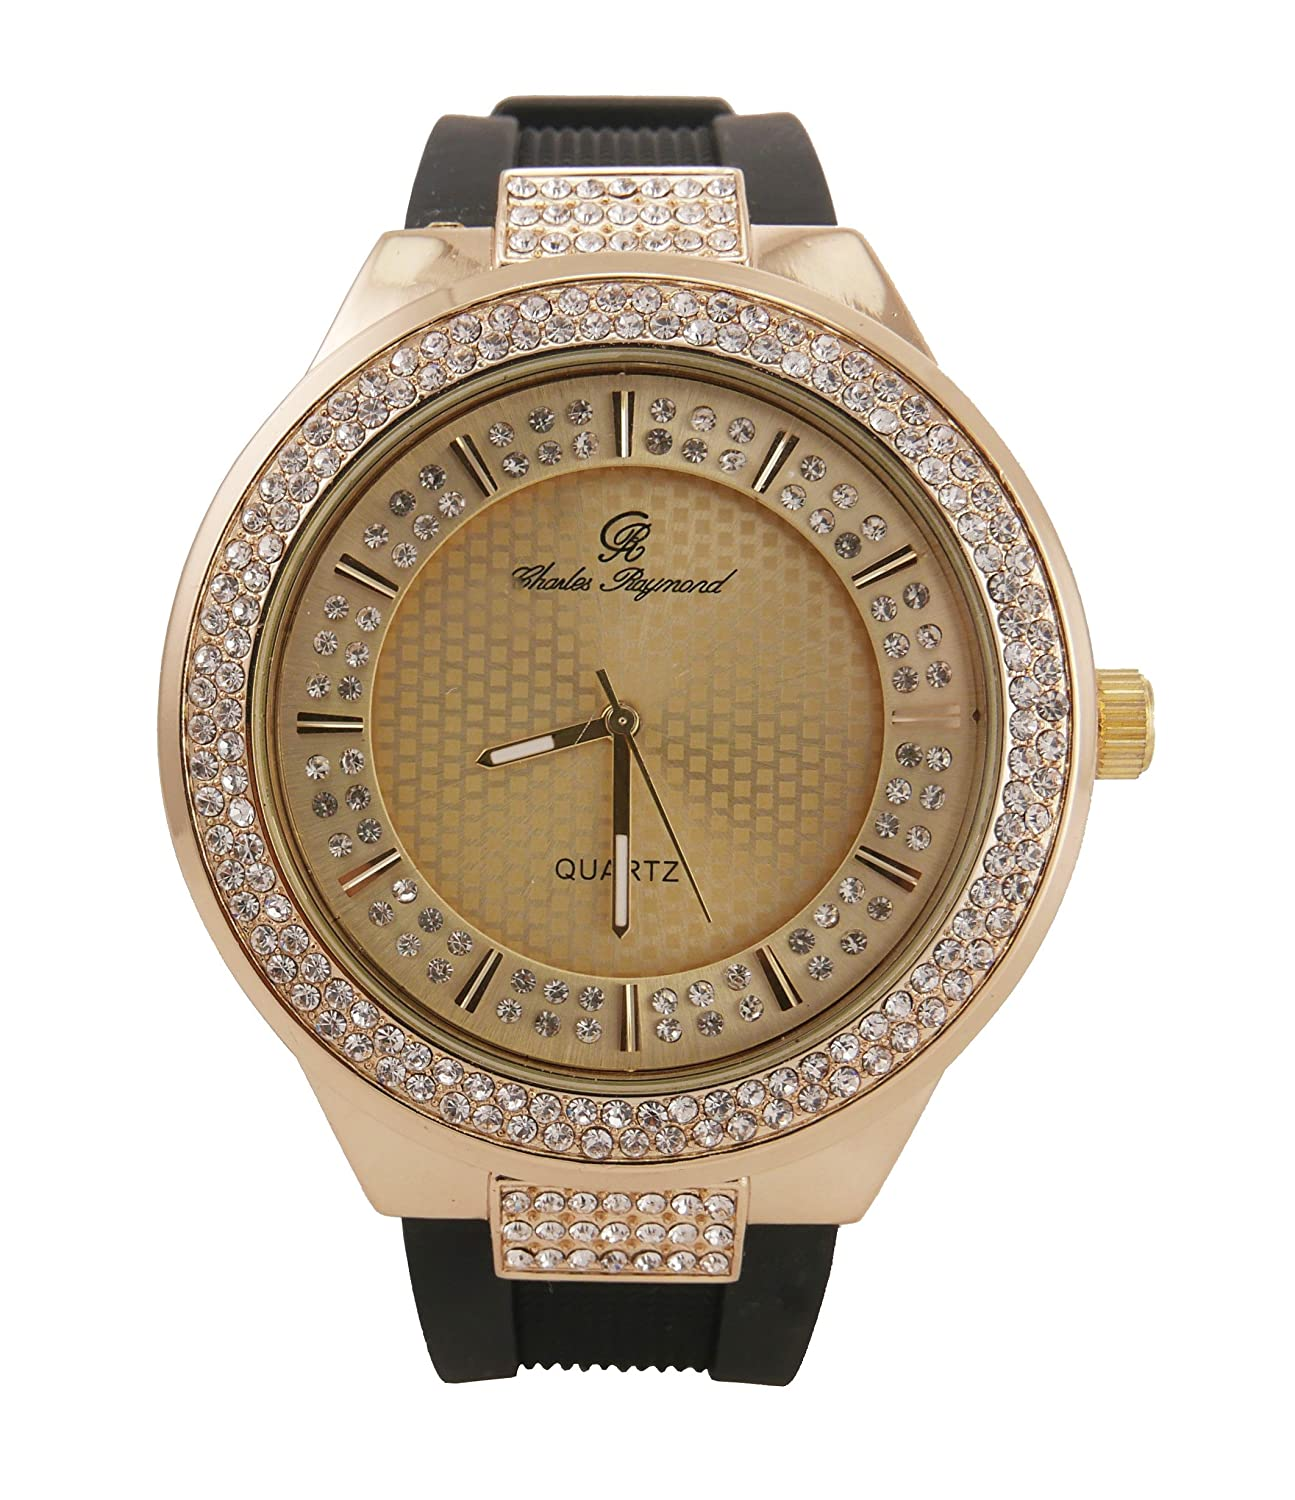 Best Hip Hop Rubber Band Luxurious Bling Bling Fashion Style Iced Out Watch with Crafted Double Dial Iced Out Look – 8623 Black Gold